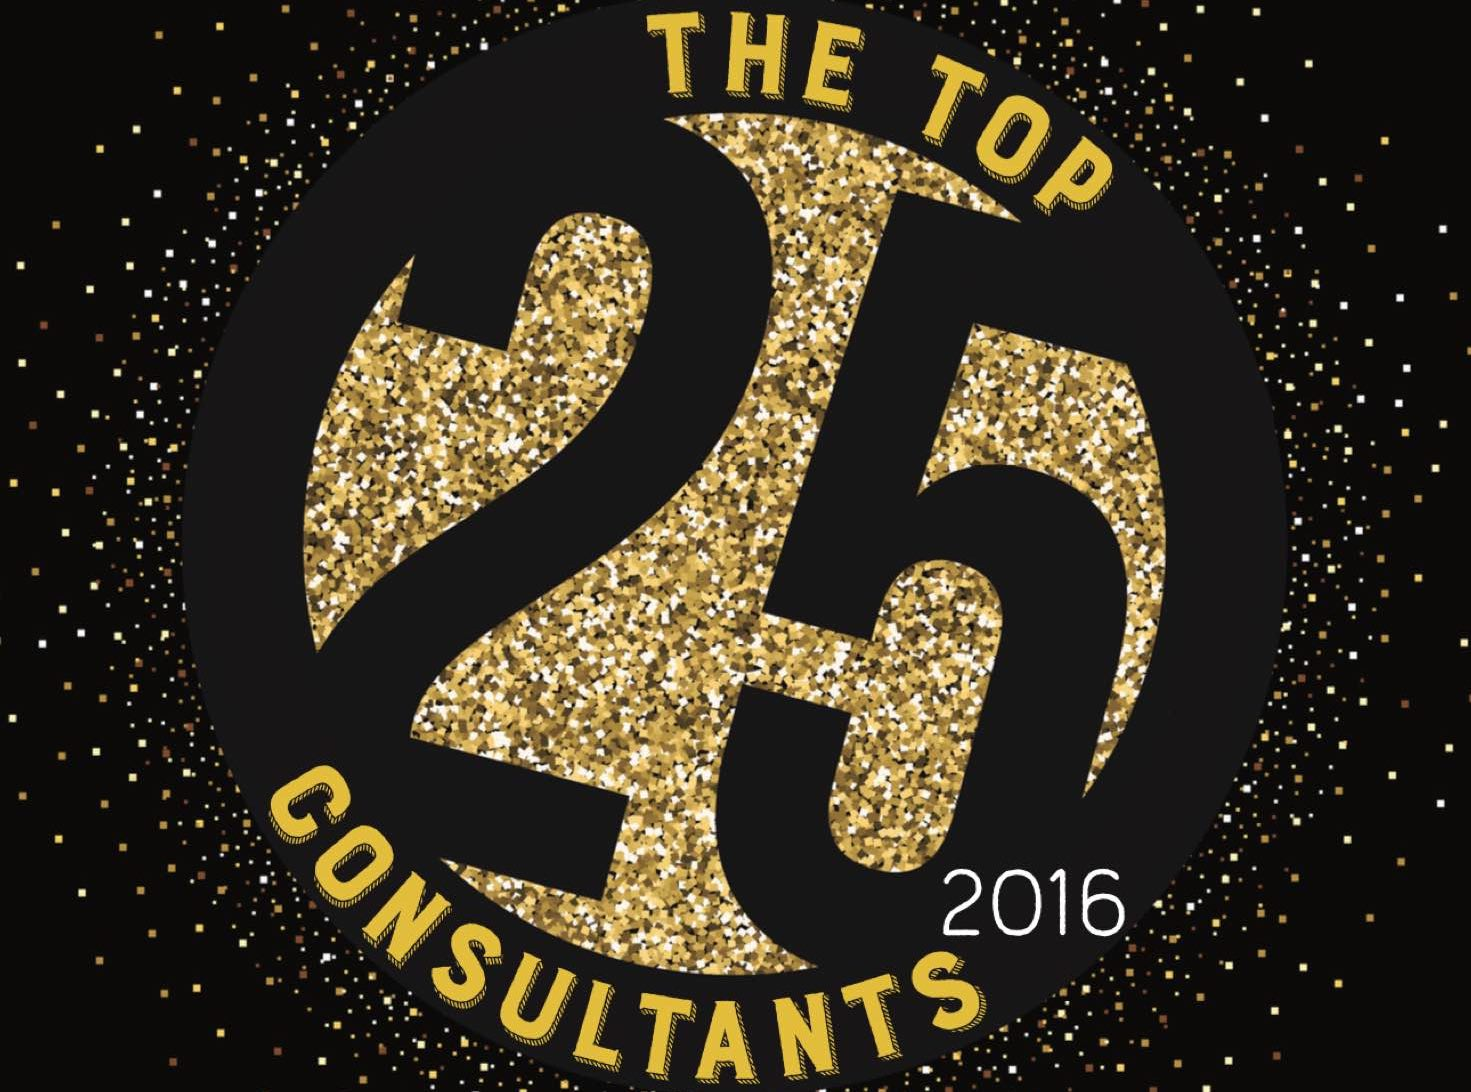 The 2016 Top 25 Consultants